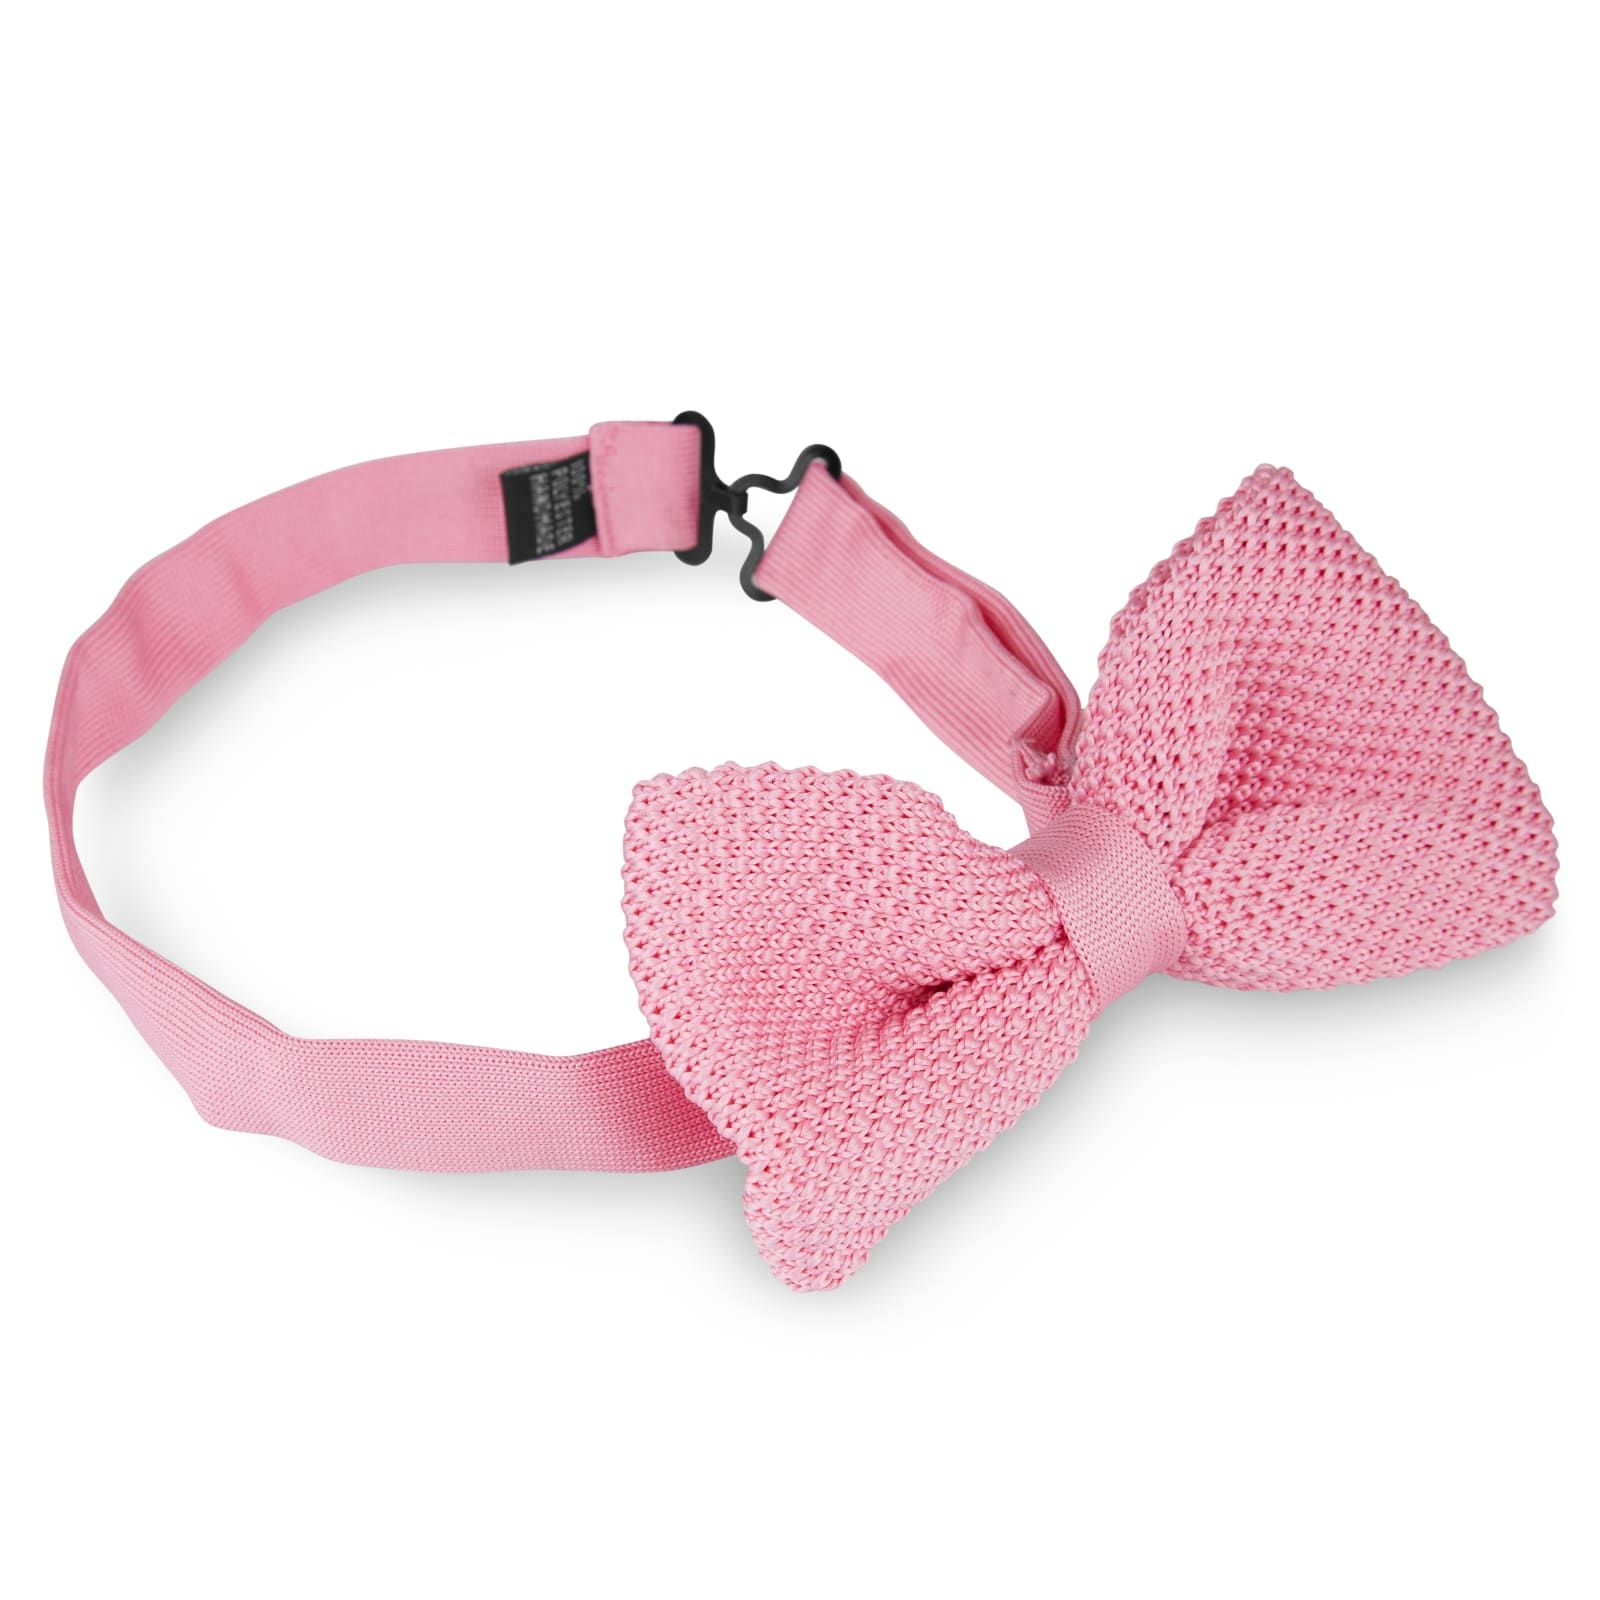 Photo of Light Pink Knitted Bow Tie | In stock! | Tailor Toki